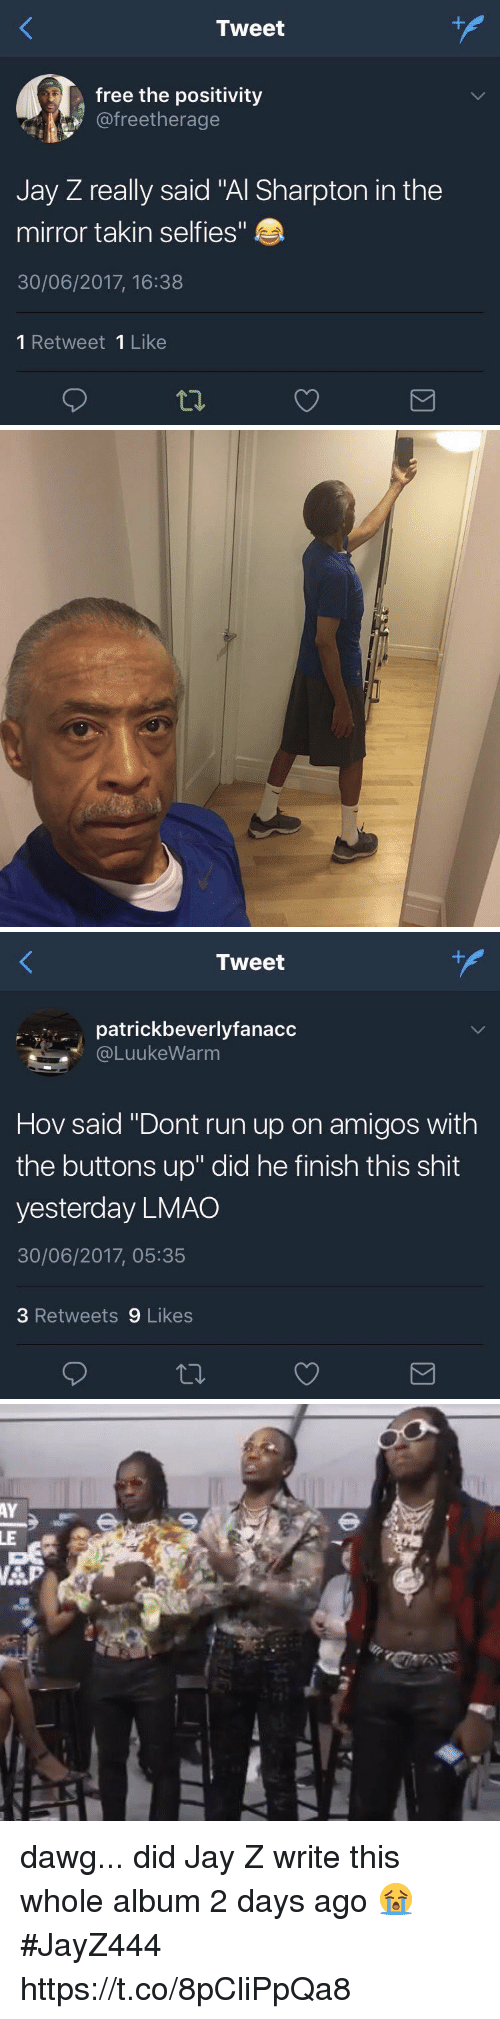 """Dawgs: Tweet  free the positivity  @freetherage  Jay Z really said """"Al Sharpton in the  mirror takin selfies""""  30/06/2017, 16:38  1 Retweet 1 Like   Tweet  patrickbeverlyfanacc  @LuukeWarm  Hov said """"Dont run up on amigos with  the buttons up"""" did he finish this shit  yesterday LMAO  30/06/2017, 05:35  3 Retweets 9 Likes dawg... did Jay Z write this whole album 2 days ago 😭 #JayZ444 https://t.co/8pCliPpQa8"""